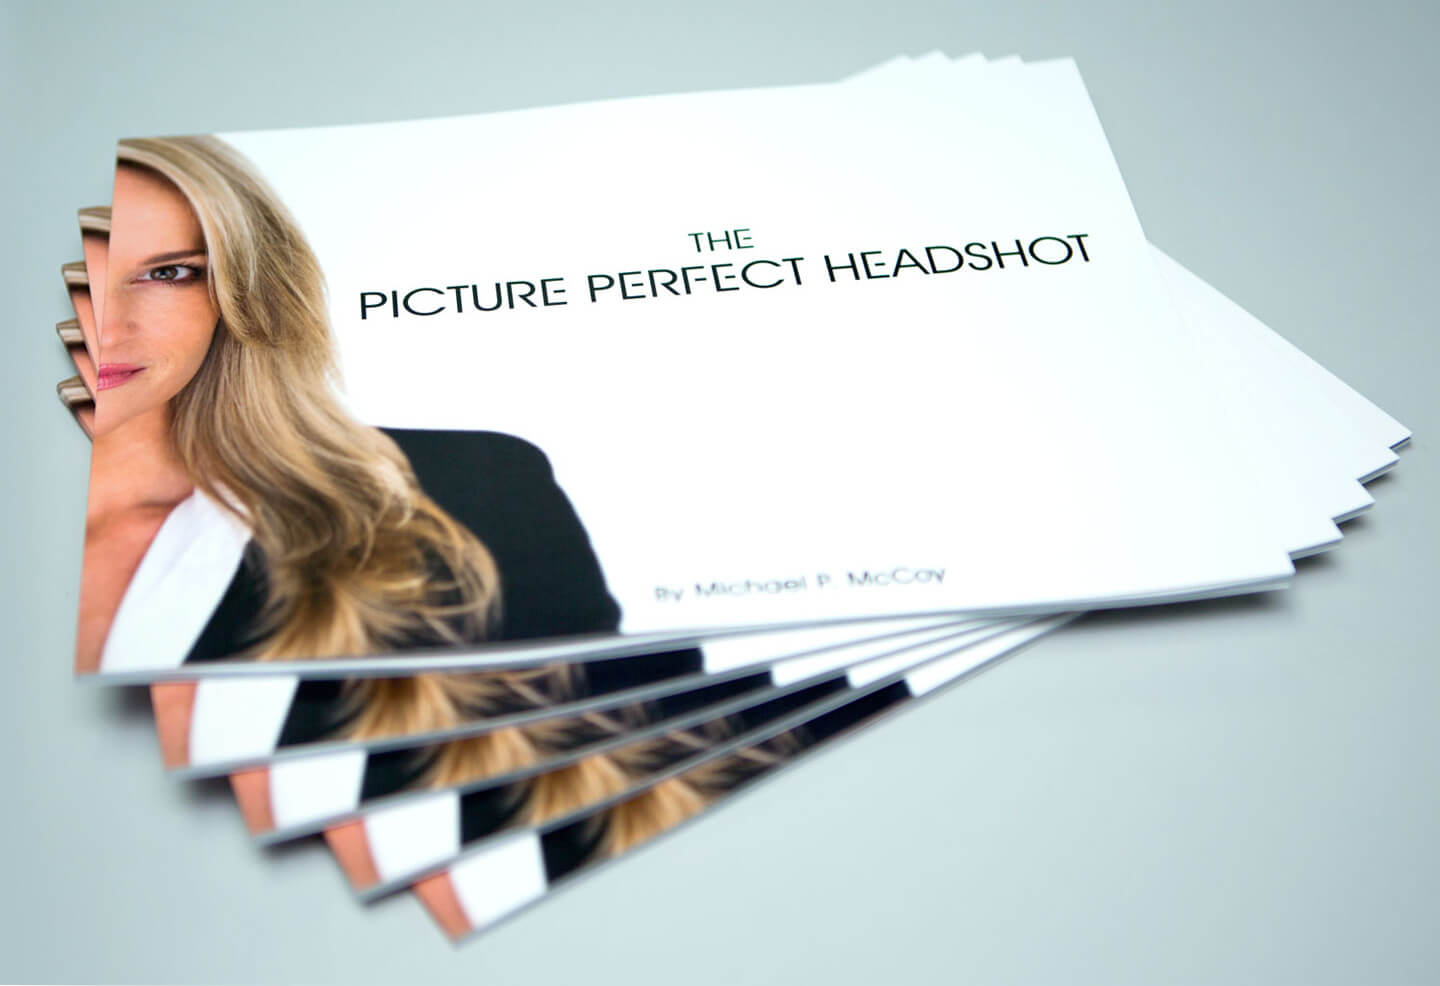 The Picture Perfect Headshot book